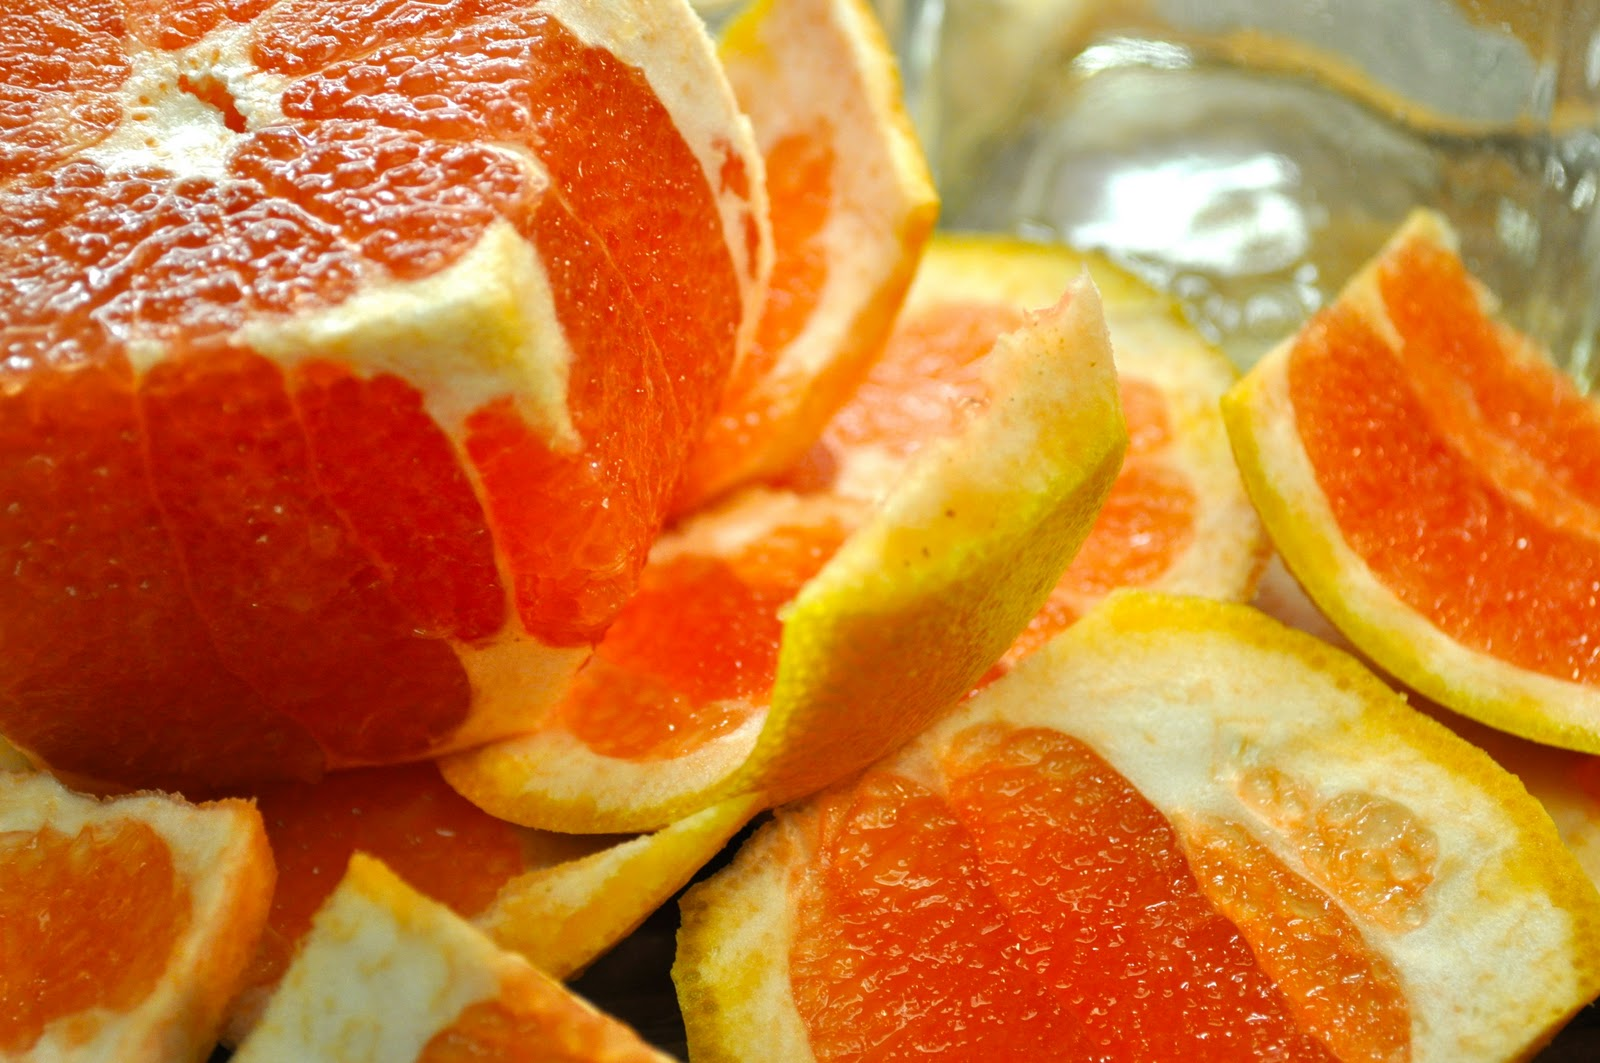 how to eat grapefruit peel